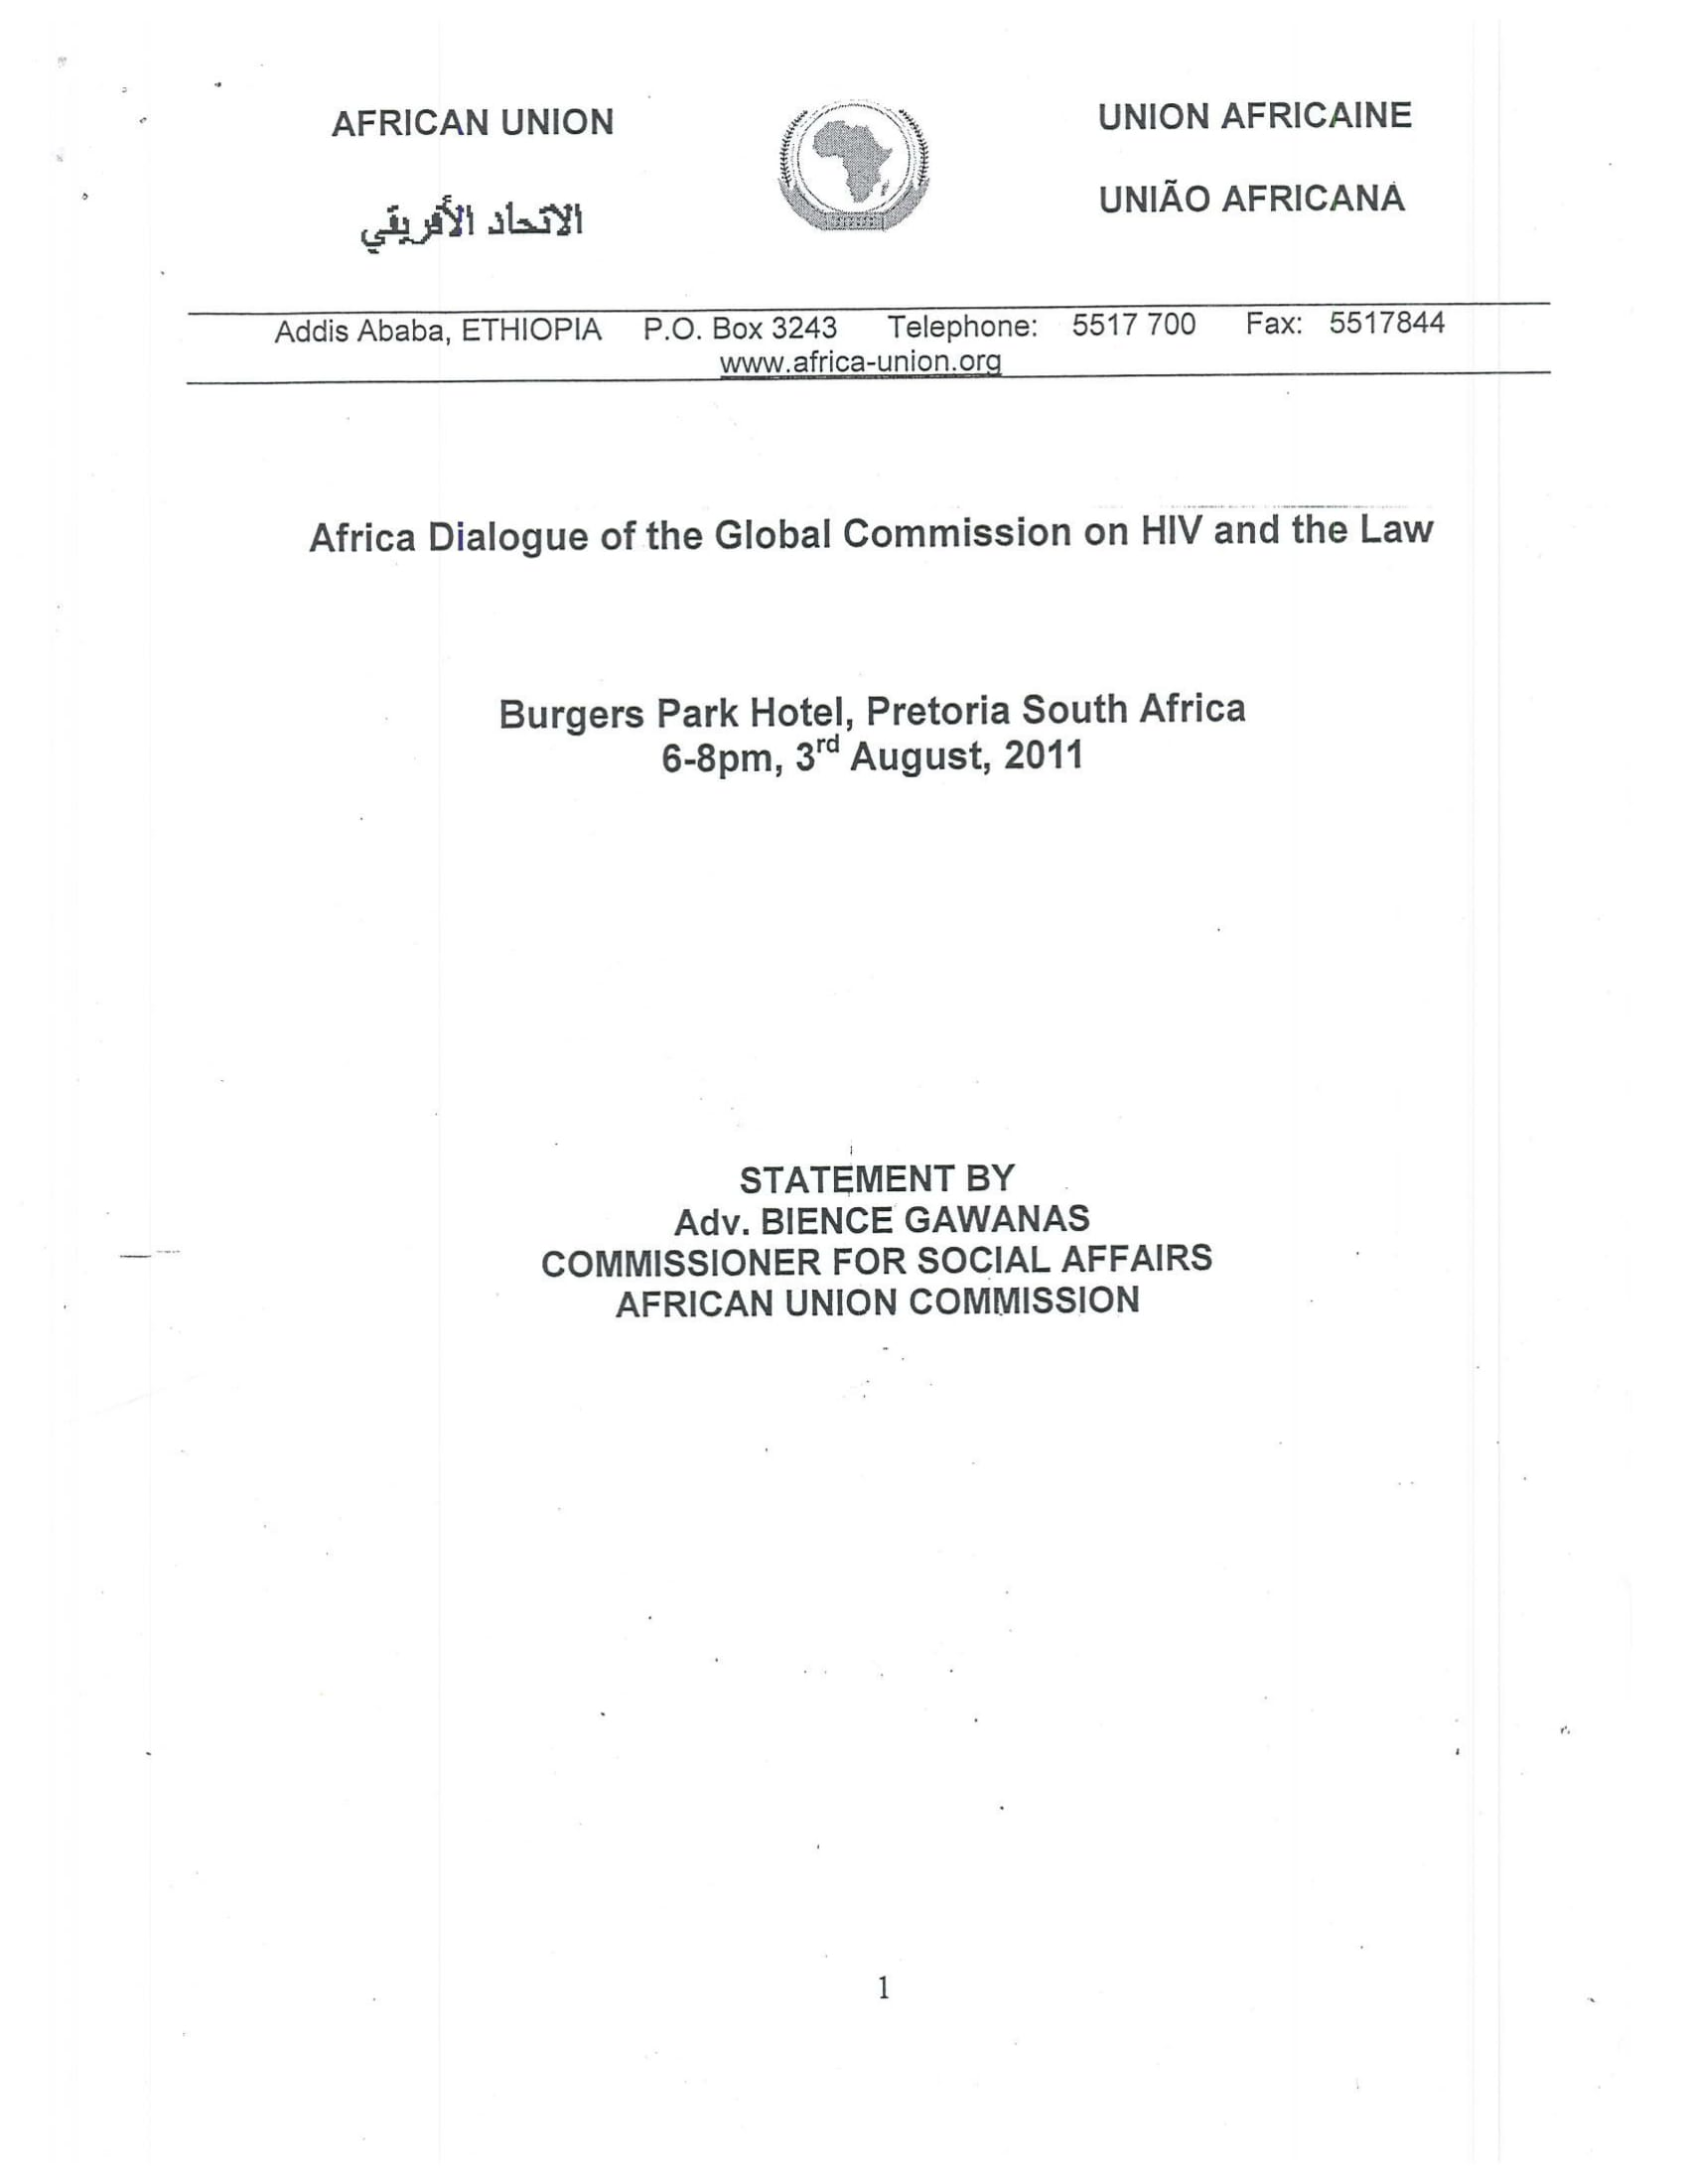 Statement by Commissioner Gawanas, African Union Commission and Global Commission on HIV and the Law